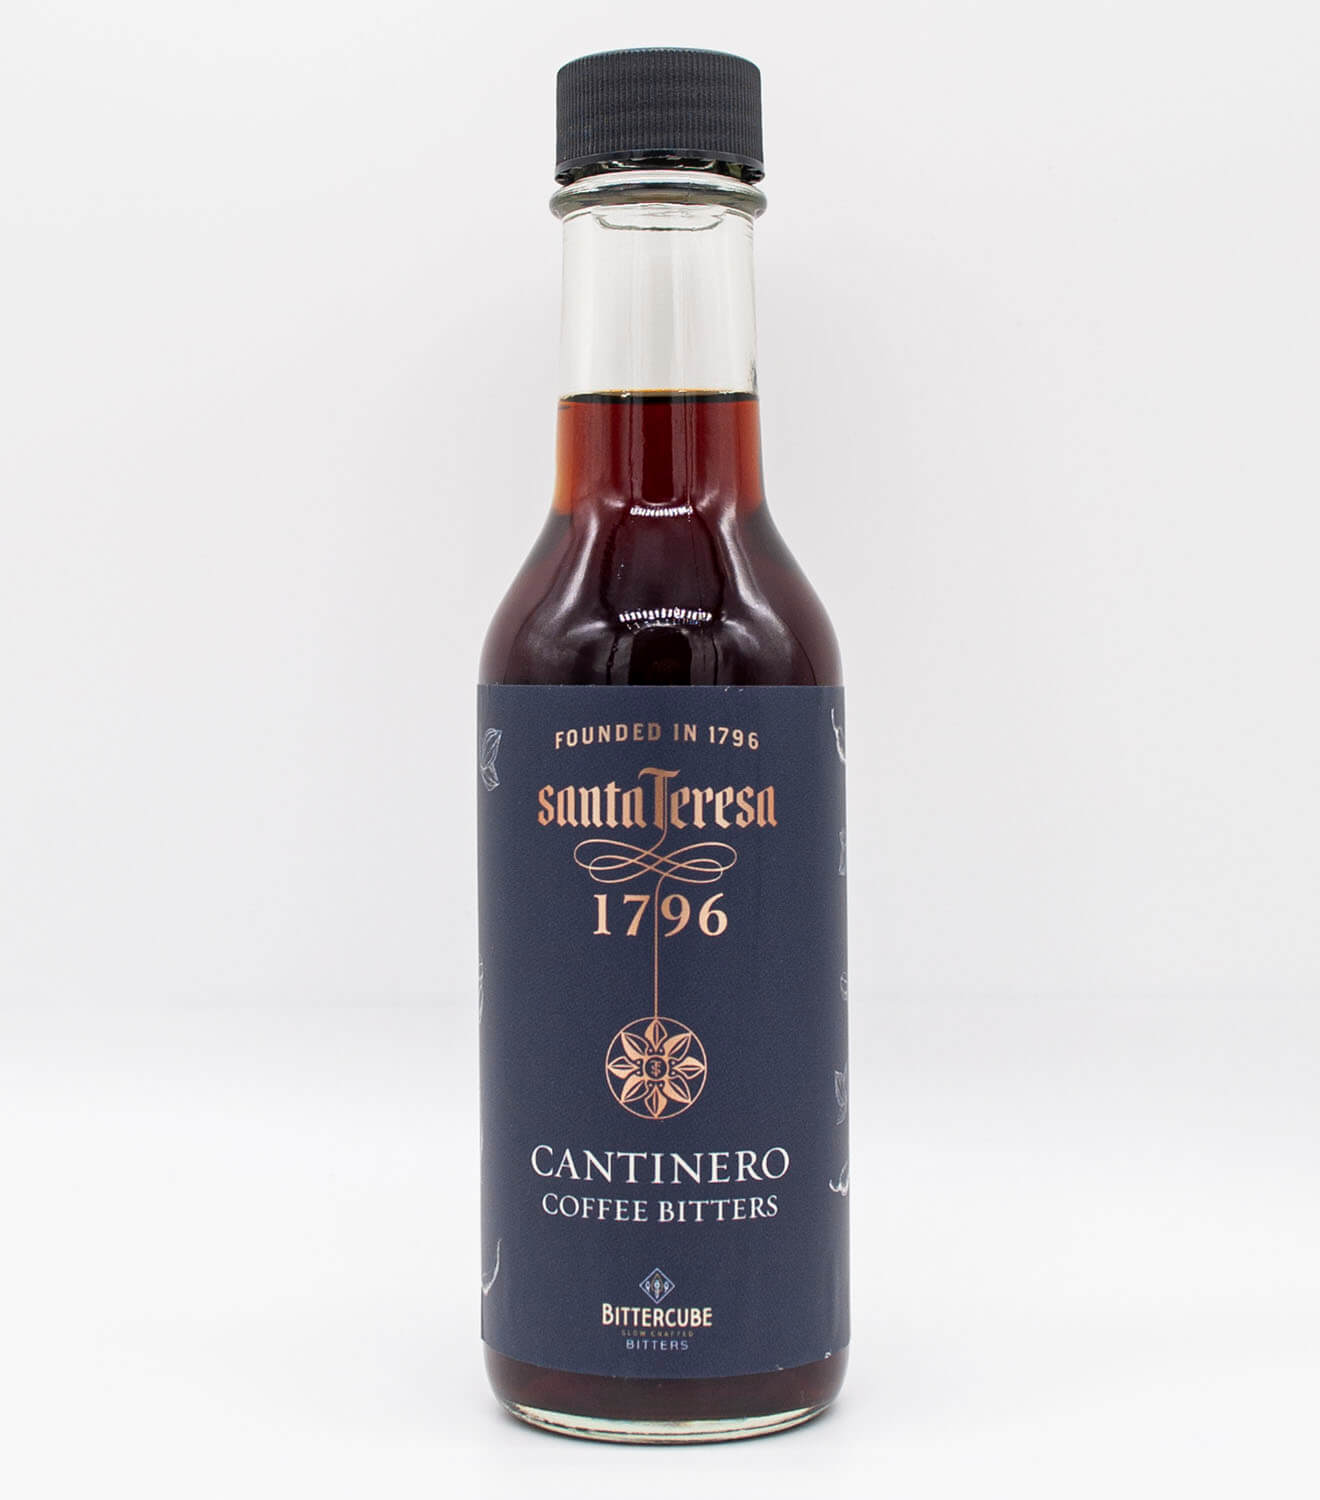 Cantinero Coffee Bitters